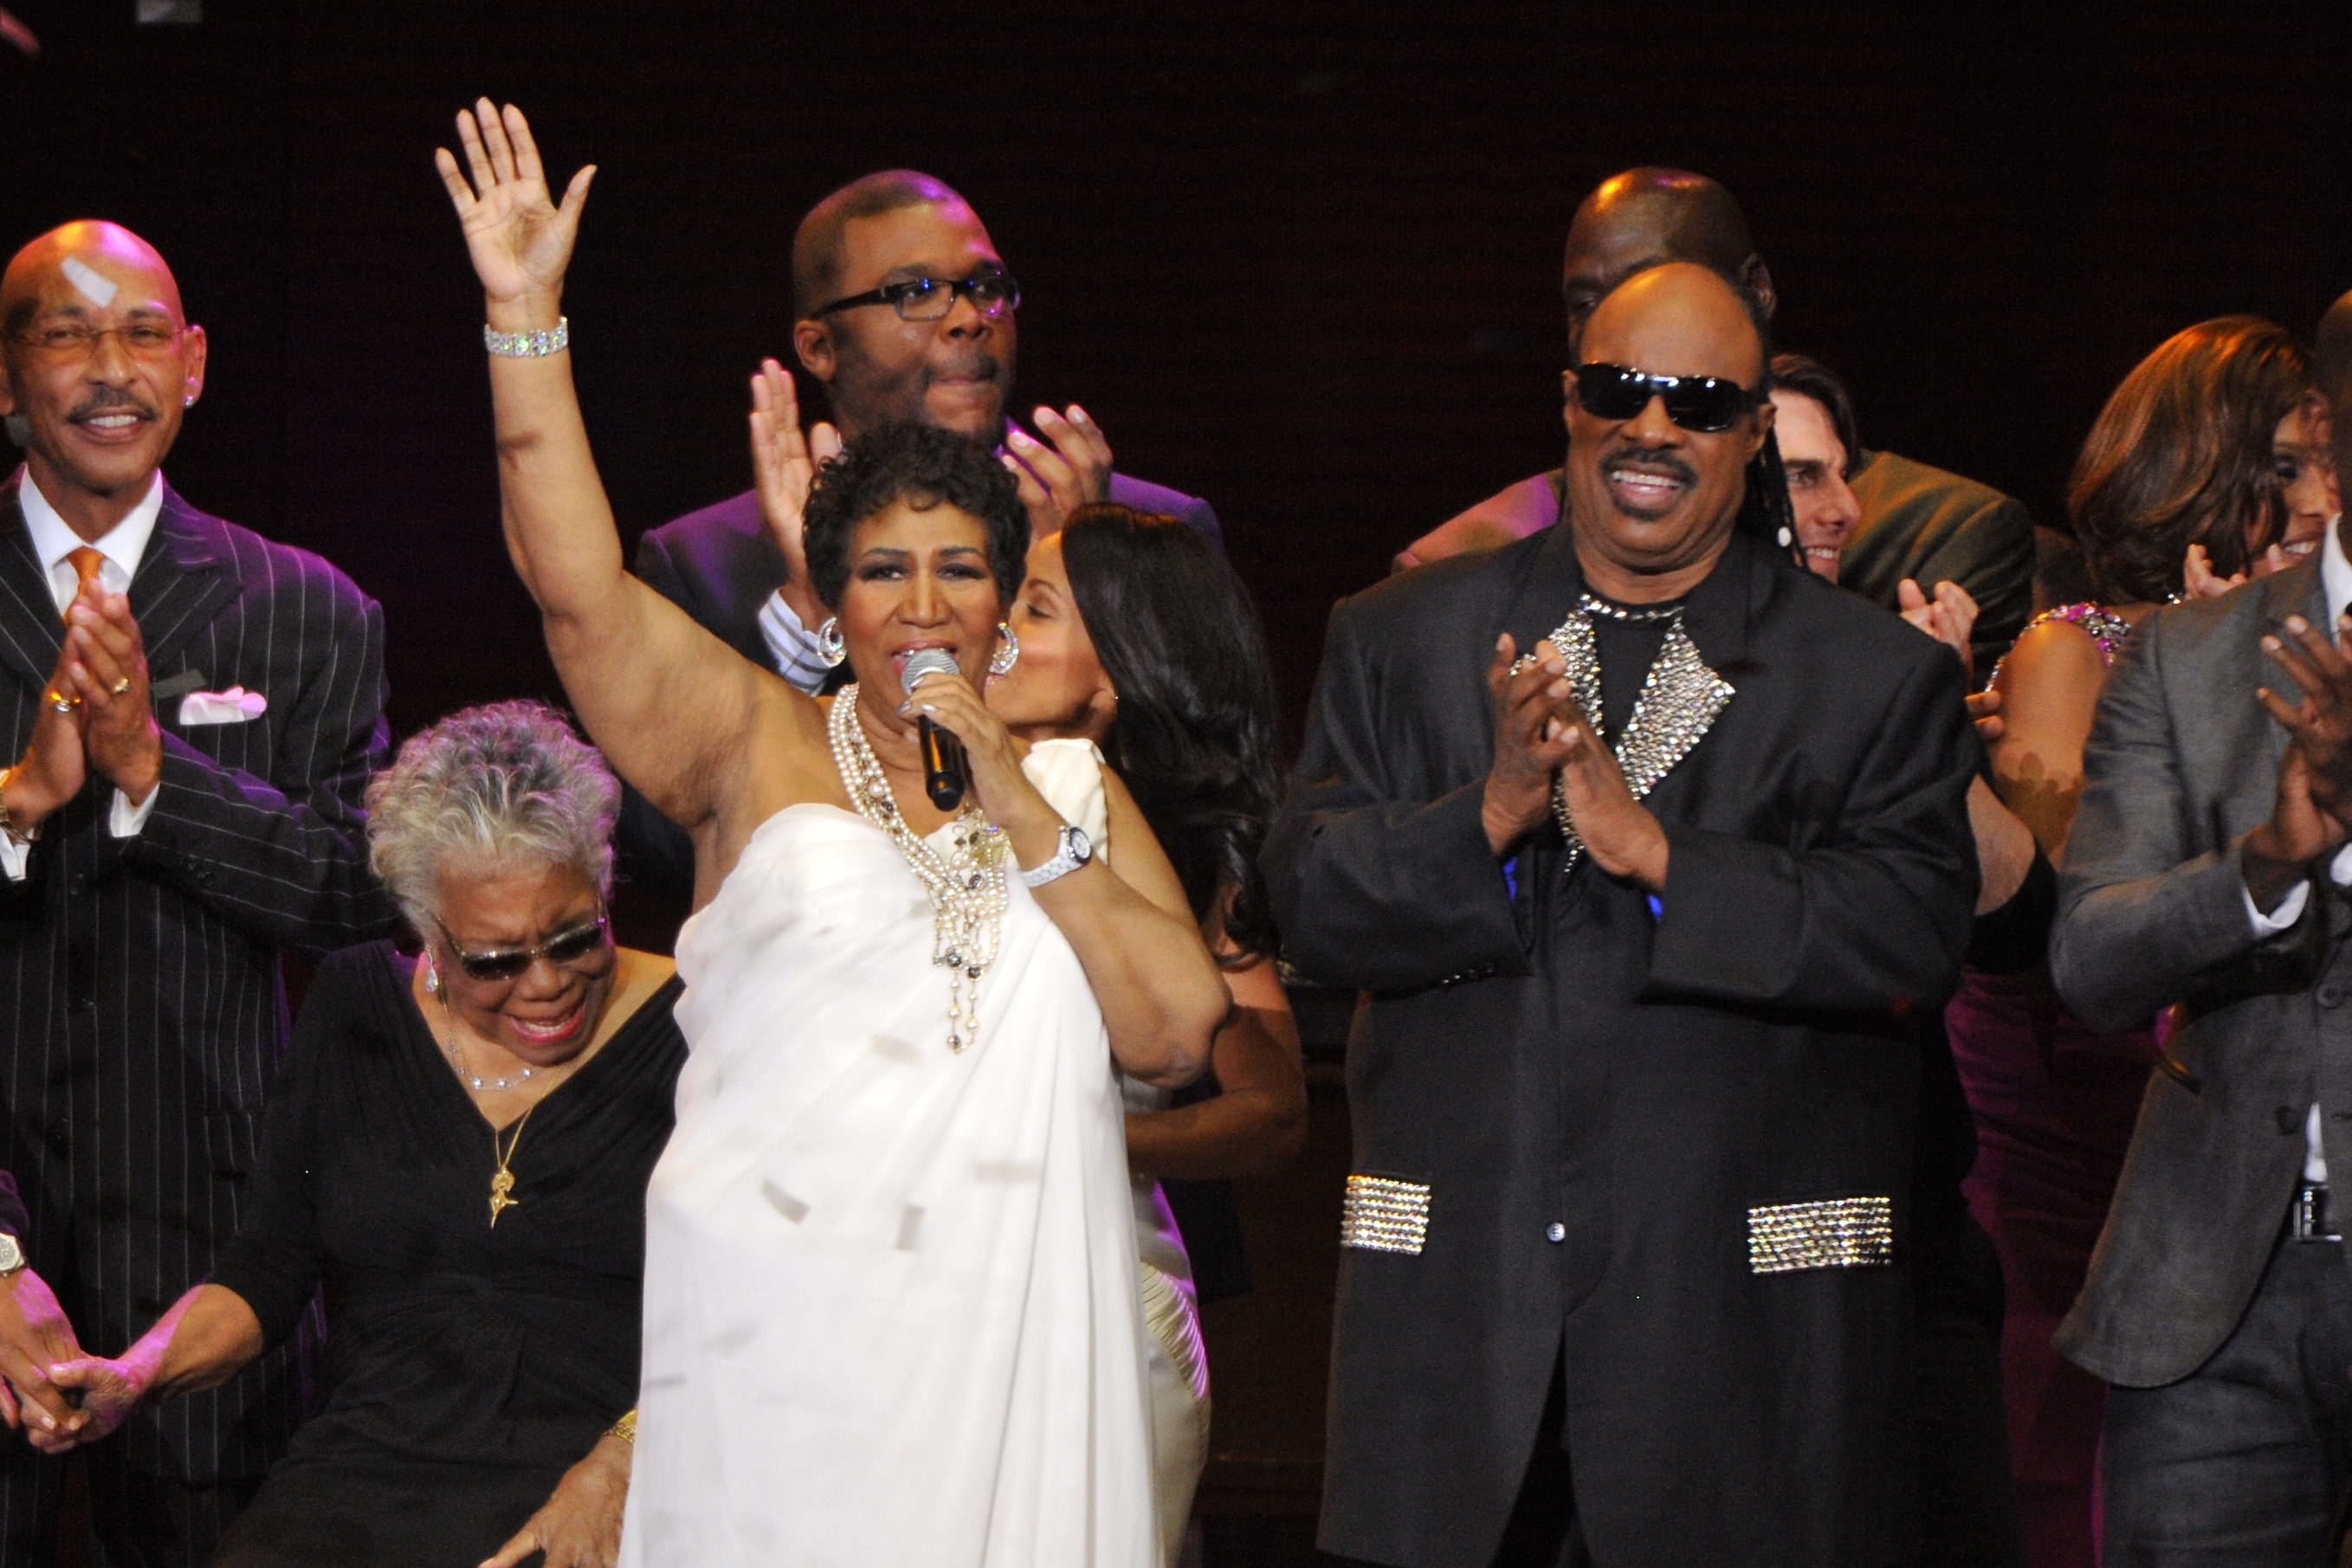 Aretha Franklin, Stevie Wonder and several others during 'Surprise Oprah! A Farewell Spectacular' at the United Center in Chicago, Illinois. (When: May 17 2011. Credit: Ray Garbo/WENN.com)